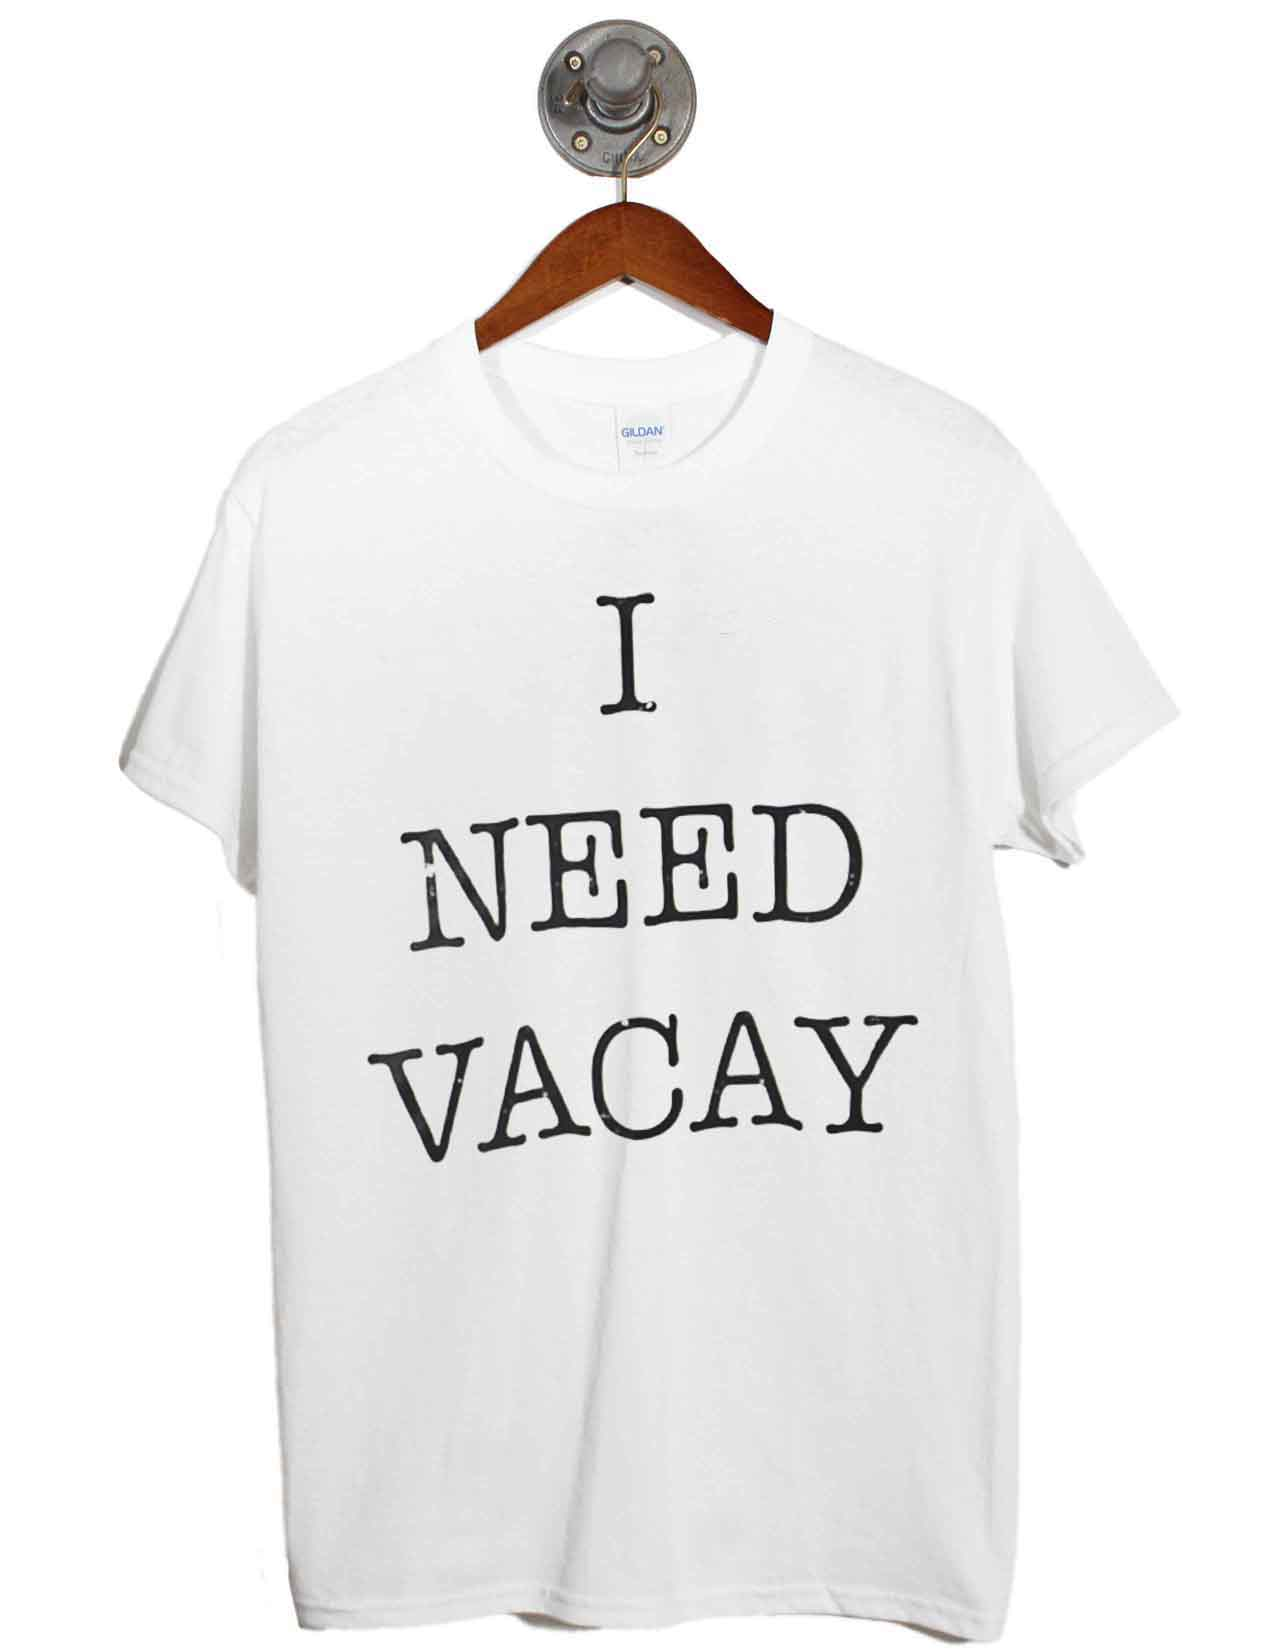 863ee665a5470 Vacay Needed – Barefoot Campus Outfitters